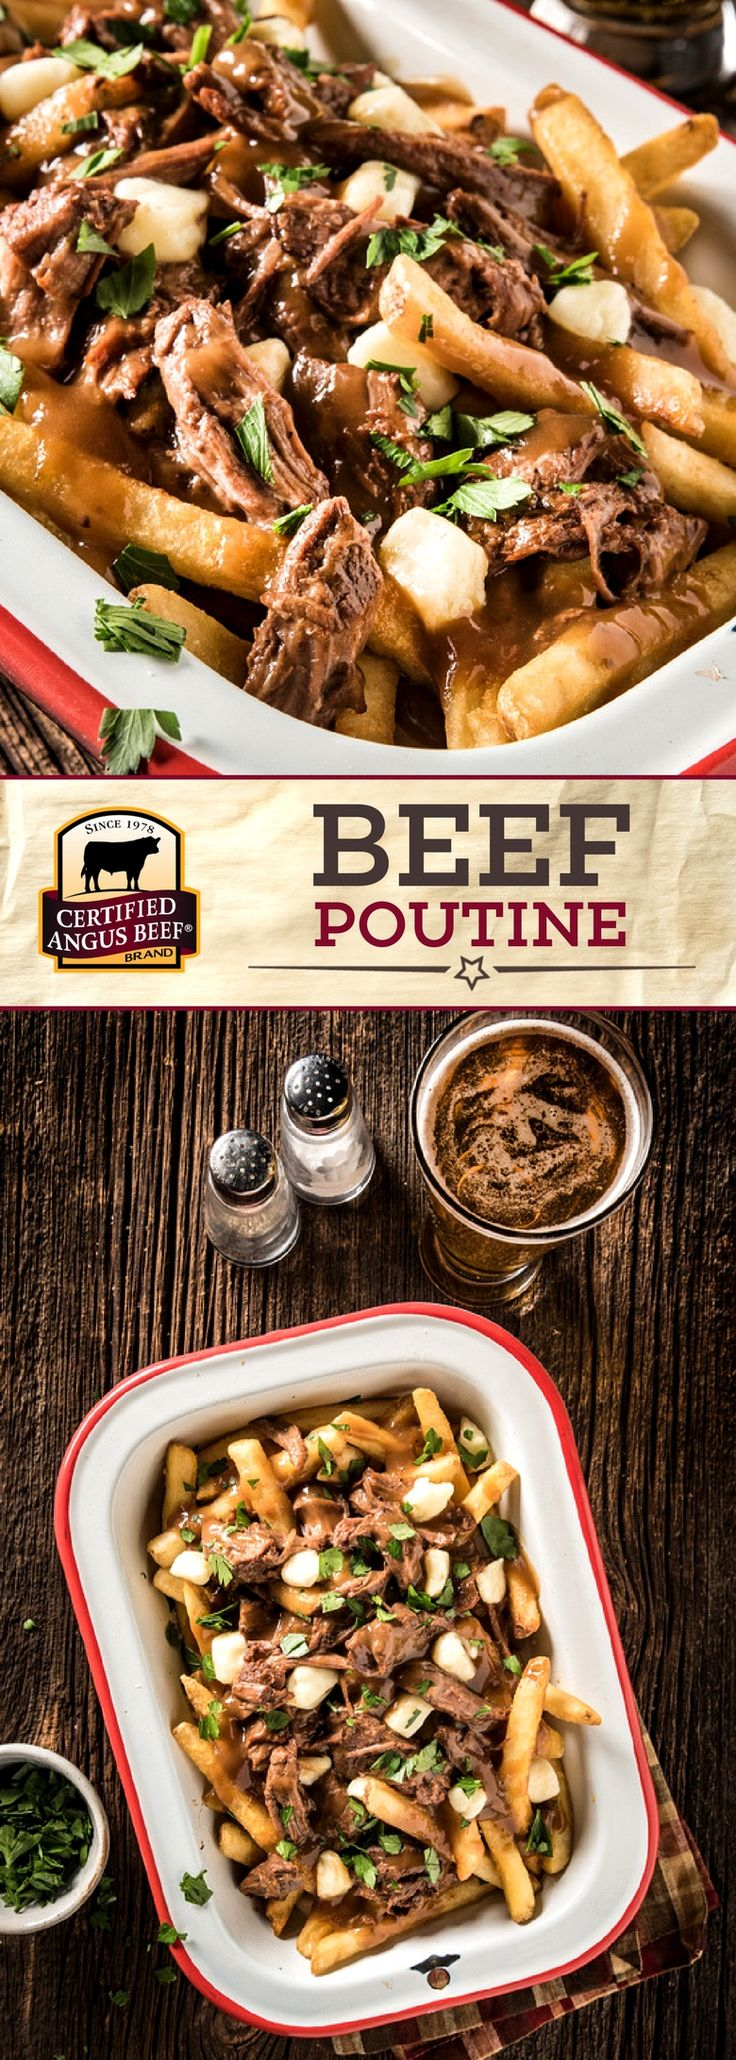 Certified Angus Beef®️️️ brand Beef Poutine is the definition of COMFORT FOOD! This simple and EASY recipe uses SLOW COOKER eye of round roast for a melt in your mouth delicious dish. Perfect for a family meal or a game day party!  #bestangusbeef #certifiedangusbeef #beefrecipe #easyrecipes #gamedayrecipes